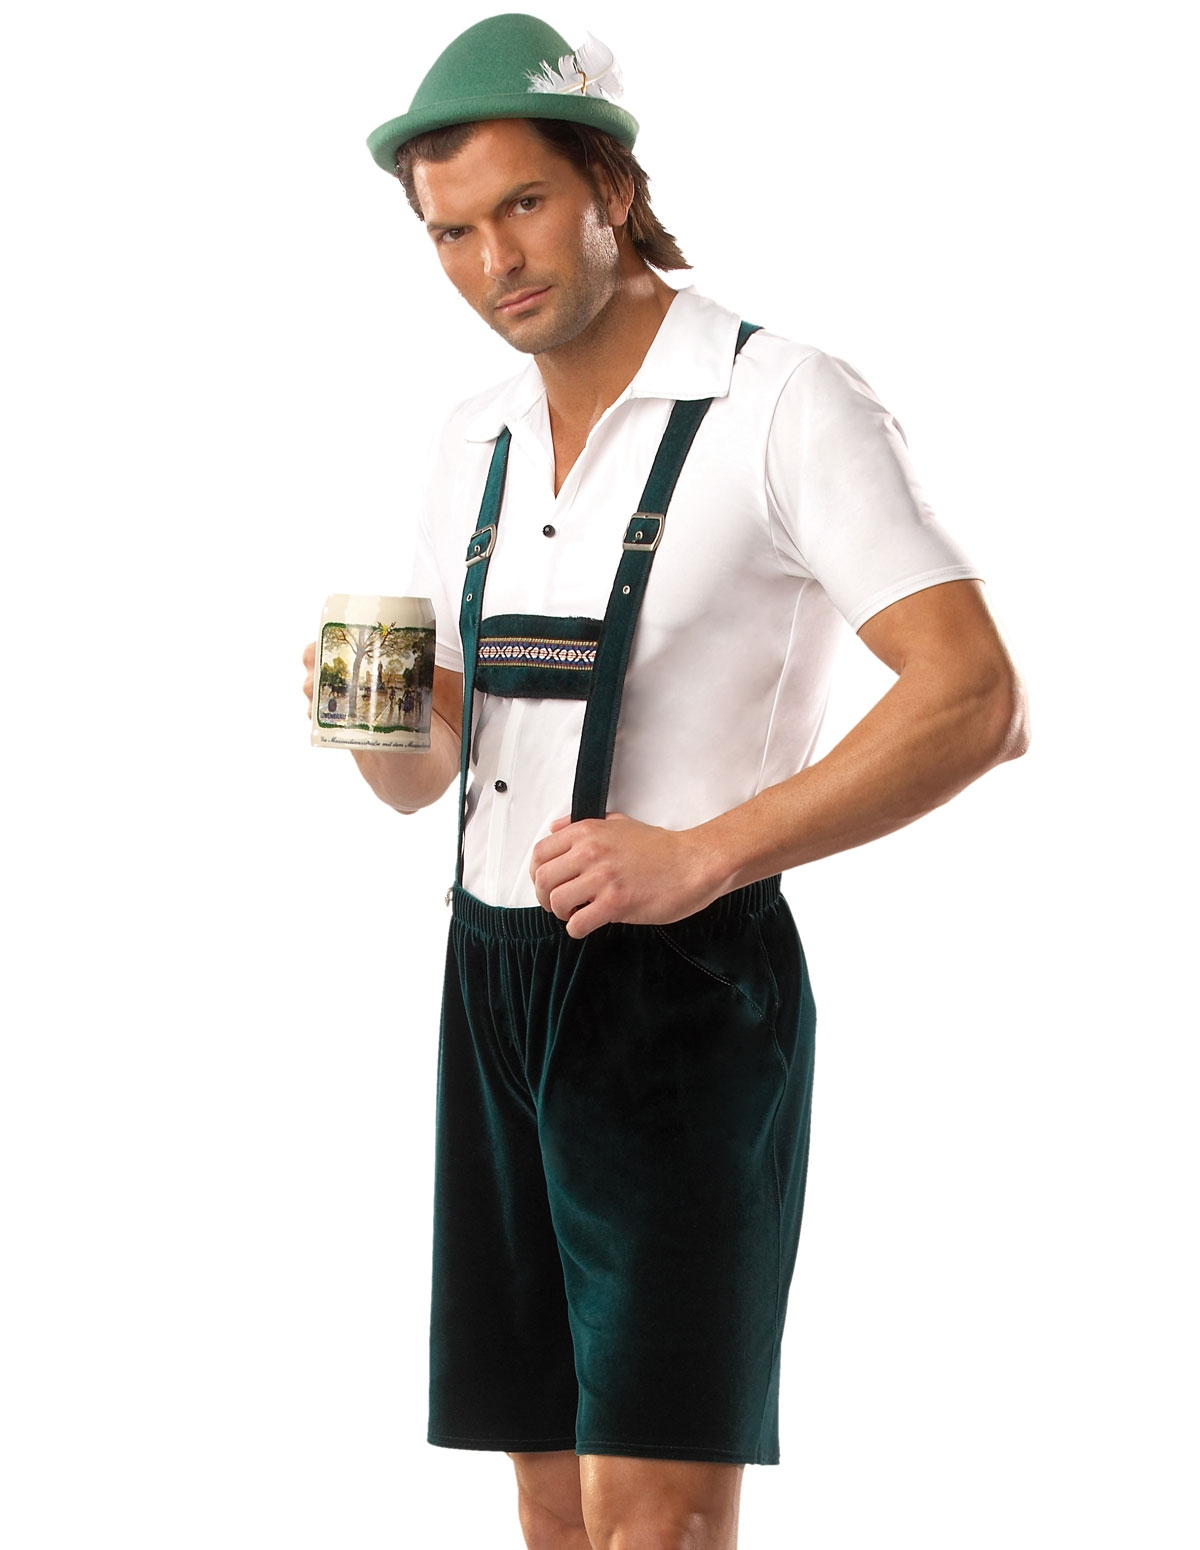 Beer Guy Costume